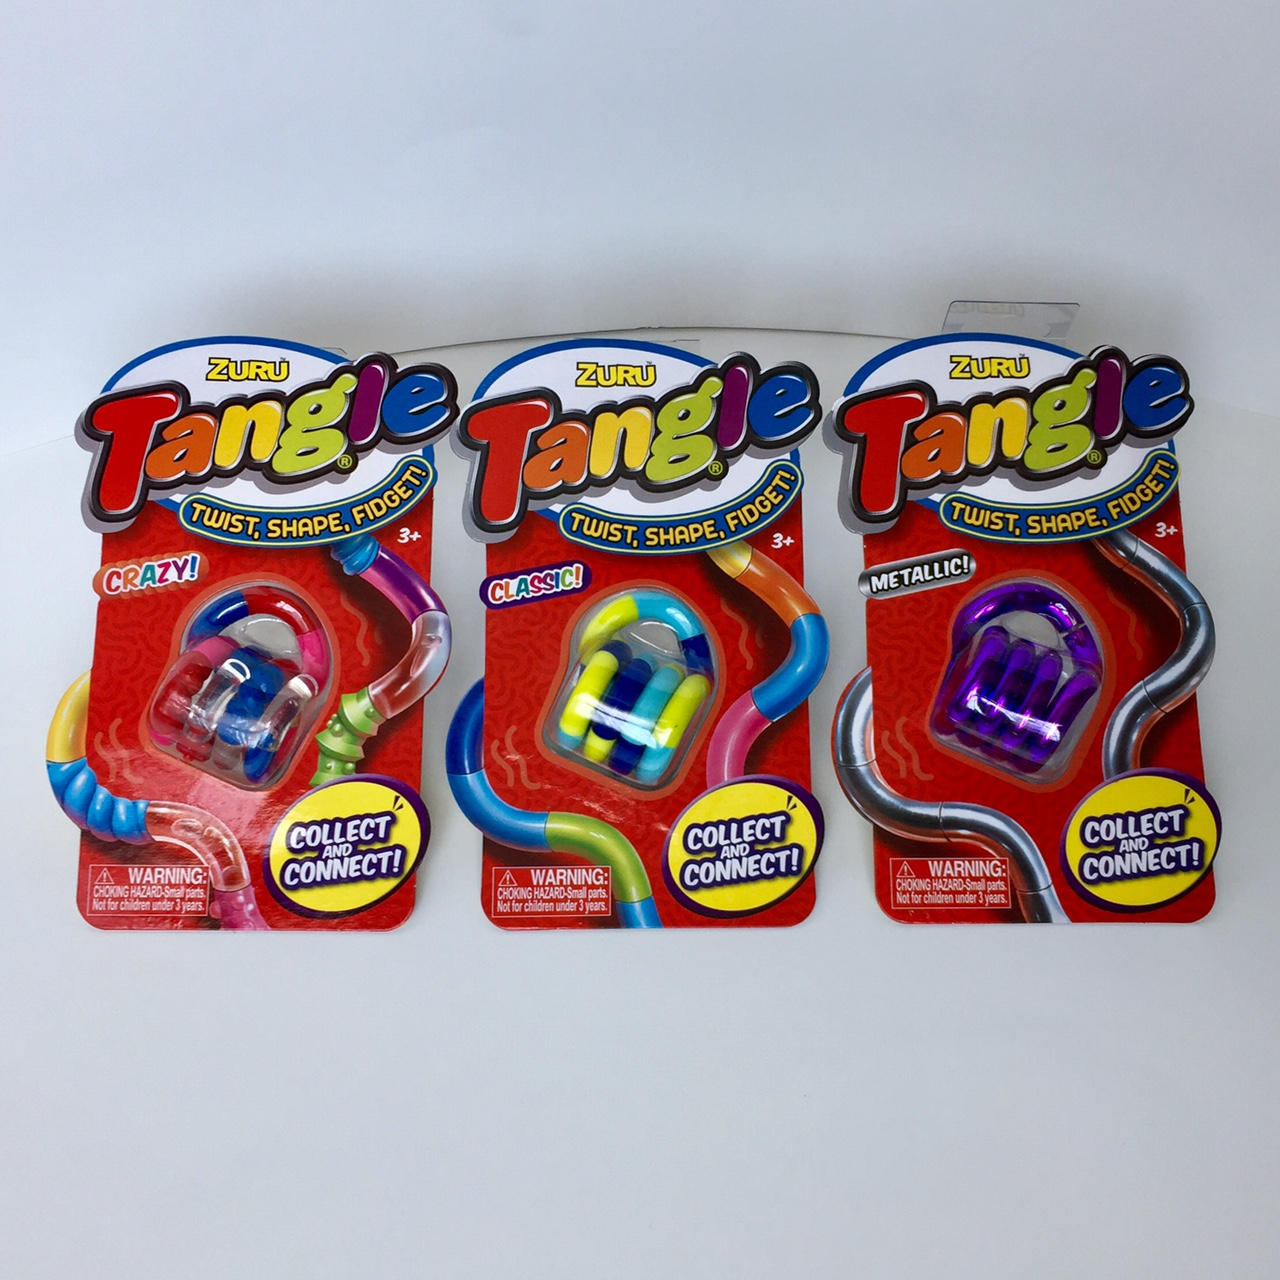 Tangle 3-pack combi